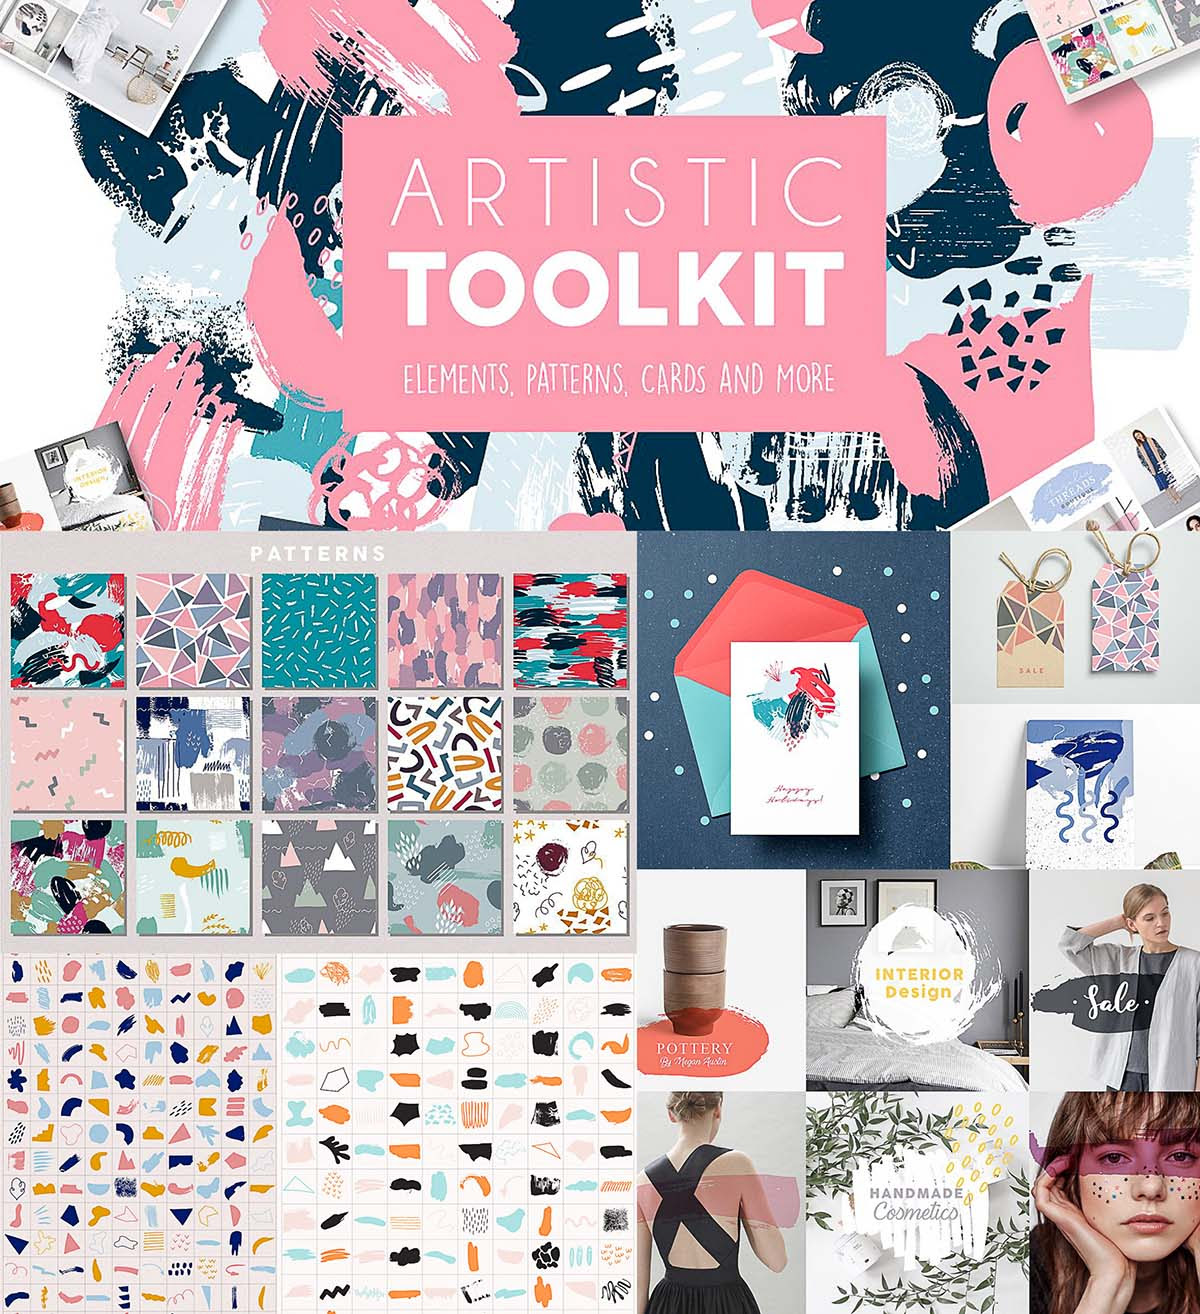 Artistic Toolkit Free Downloadcgispread Mobile Version